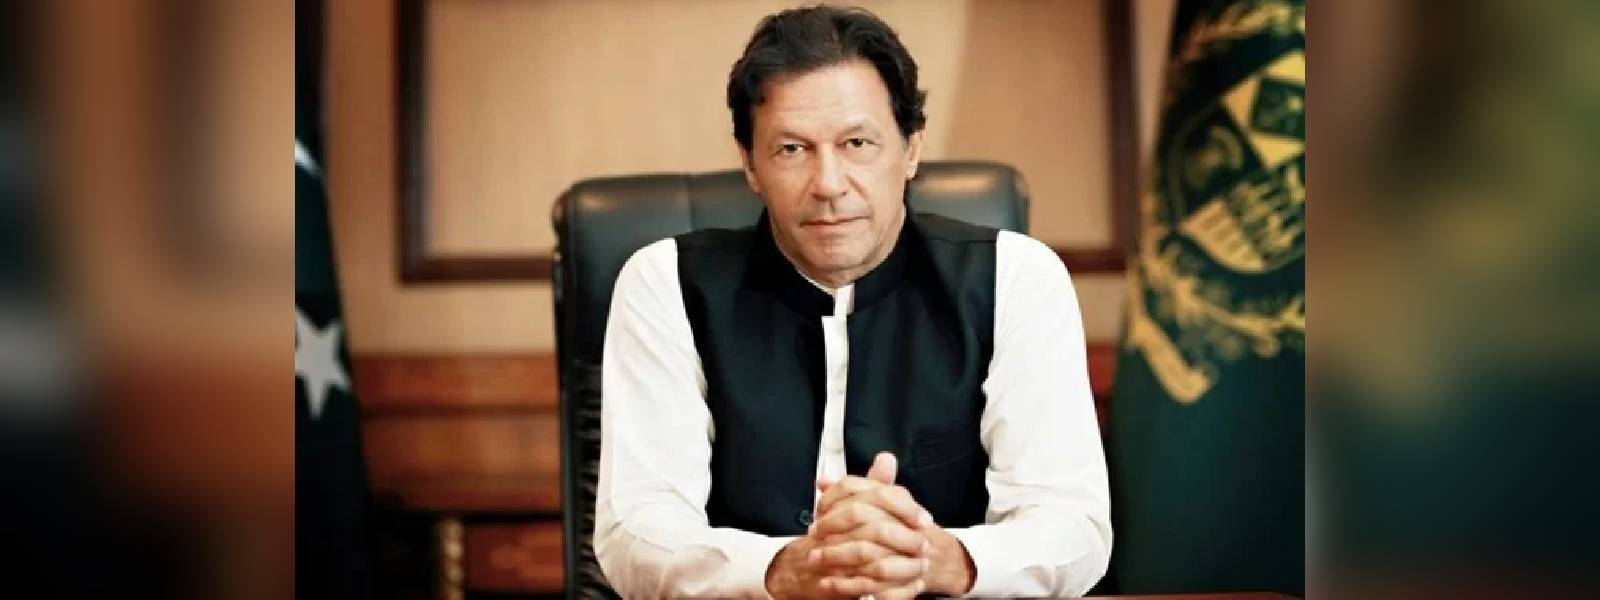 Pakistan PM Imran Khan to arrive in SL today (23)